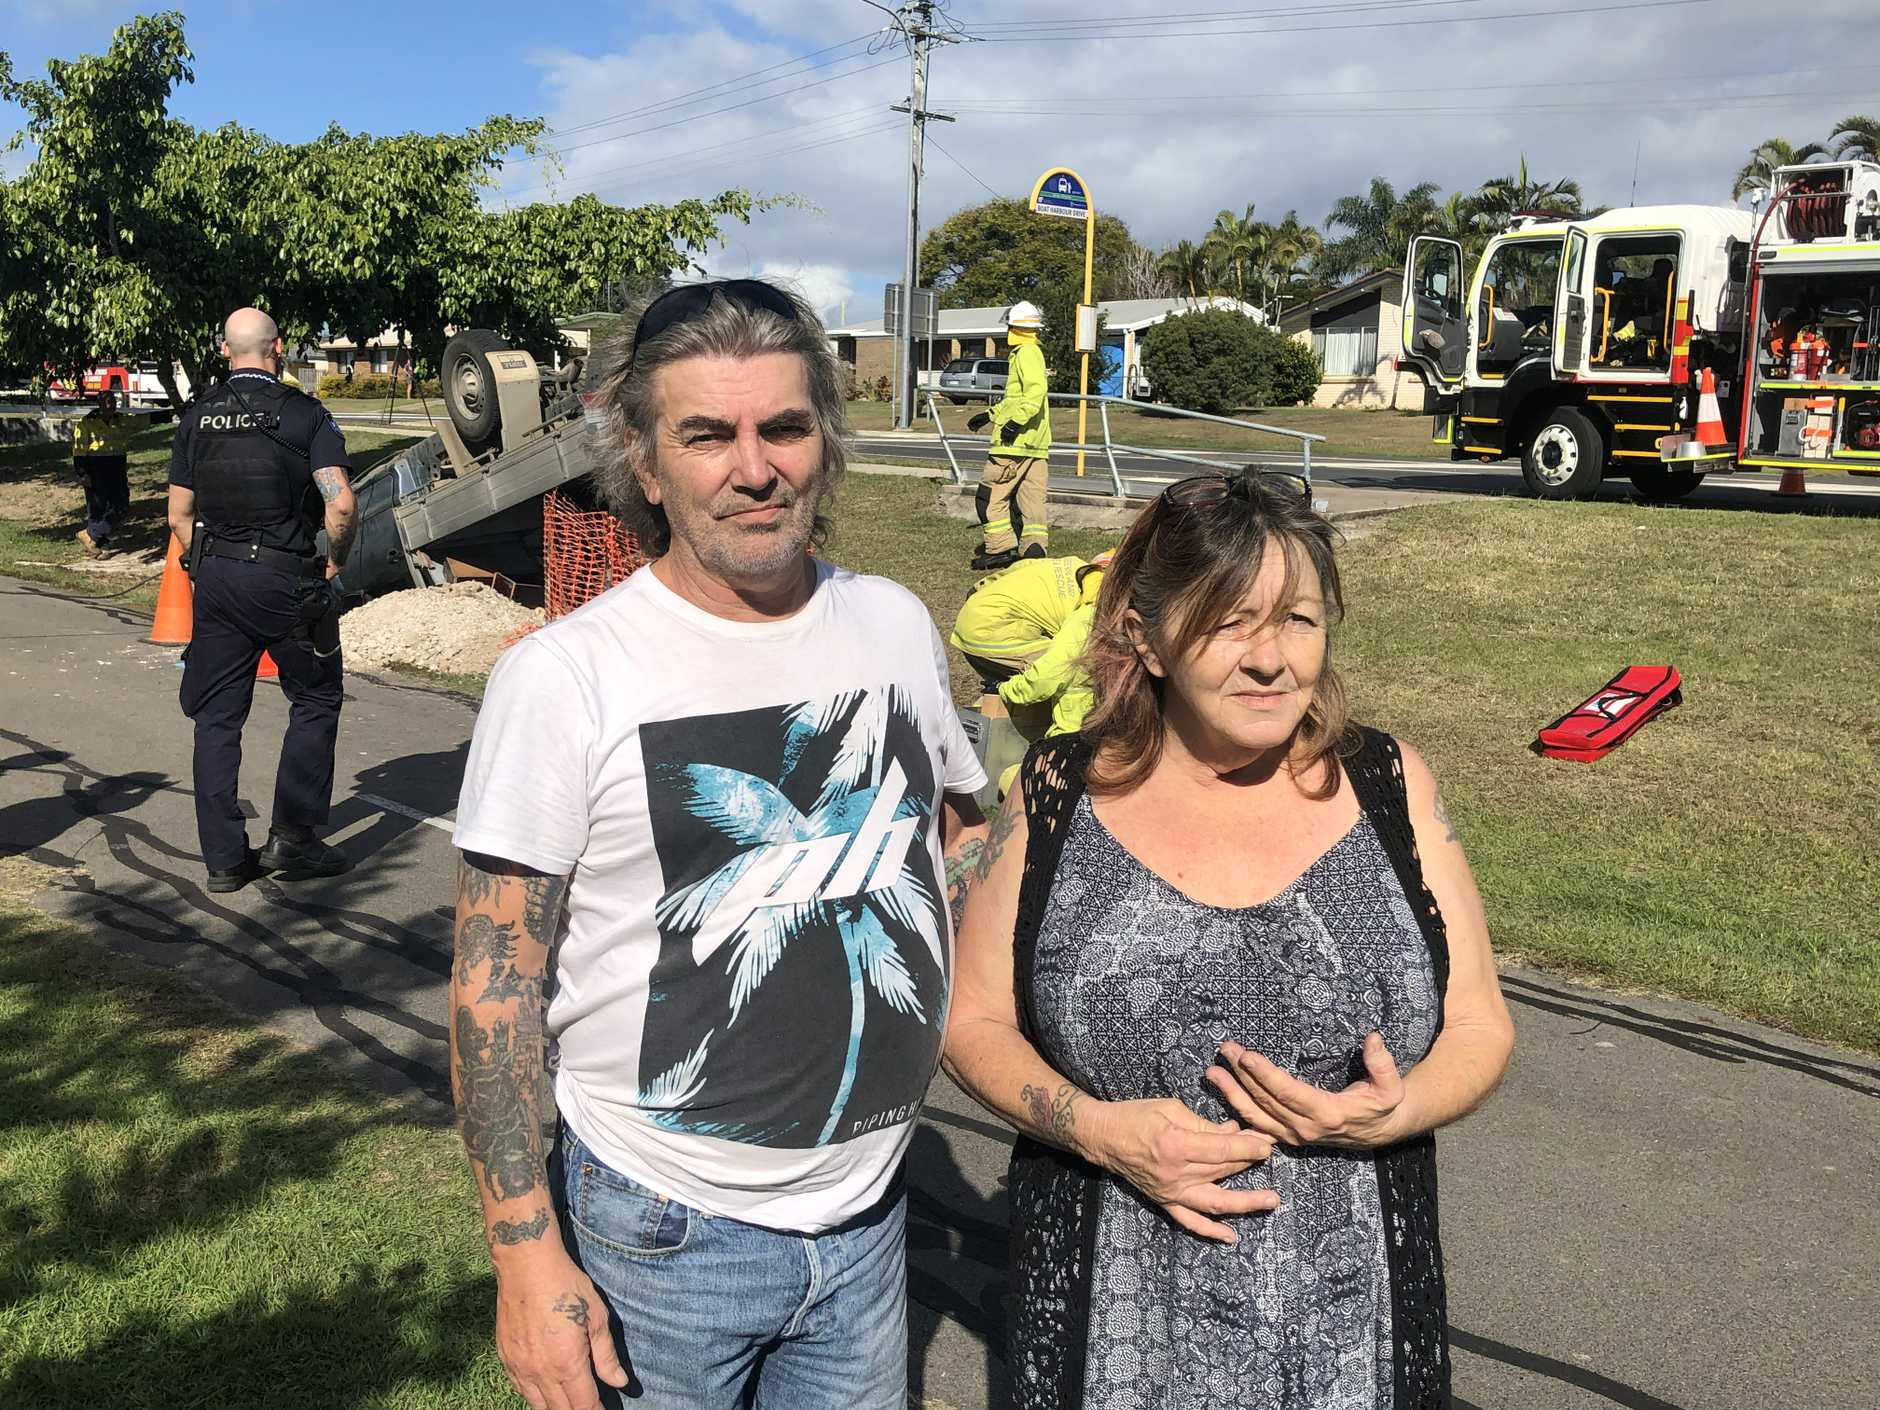 Boat Harbour Dr crash witnesses Paula and David, who were the first to respond when a man's ute flipped, trapping him inside.